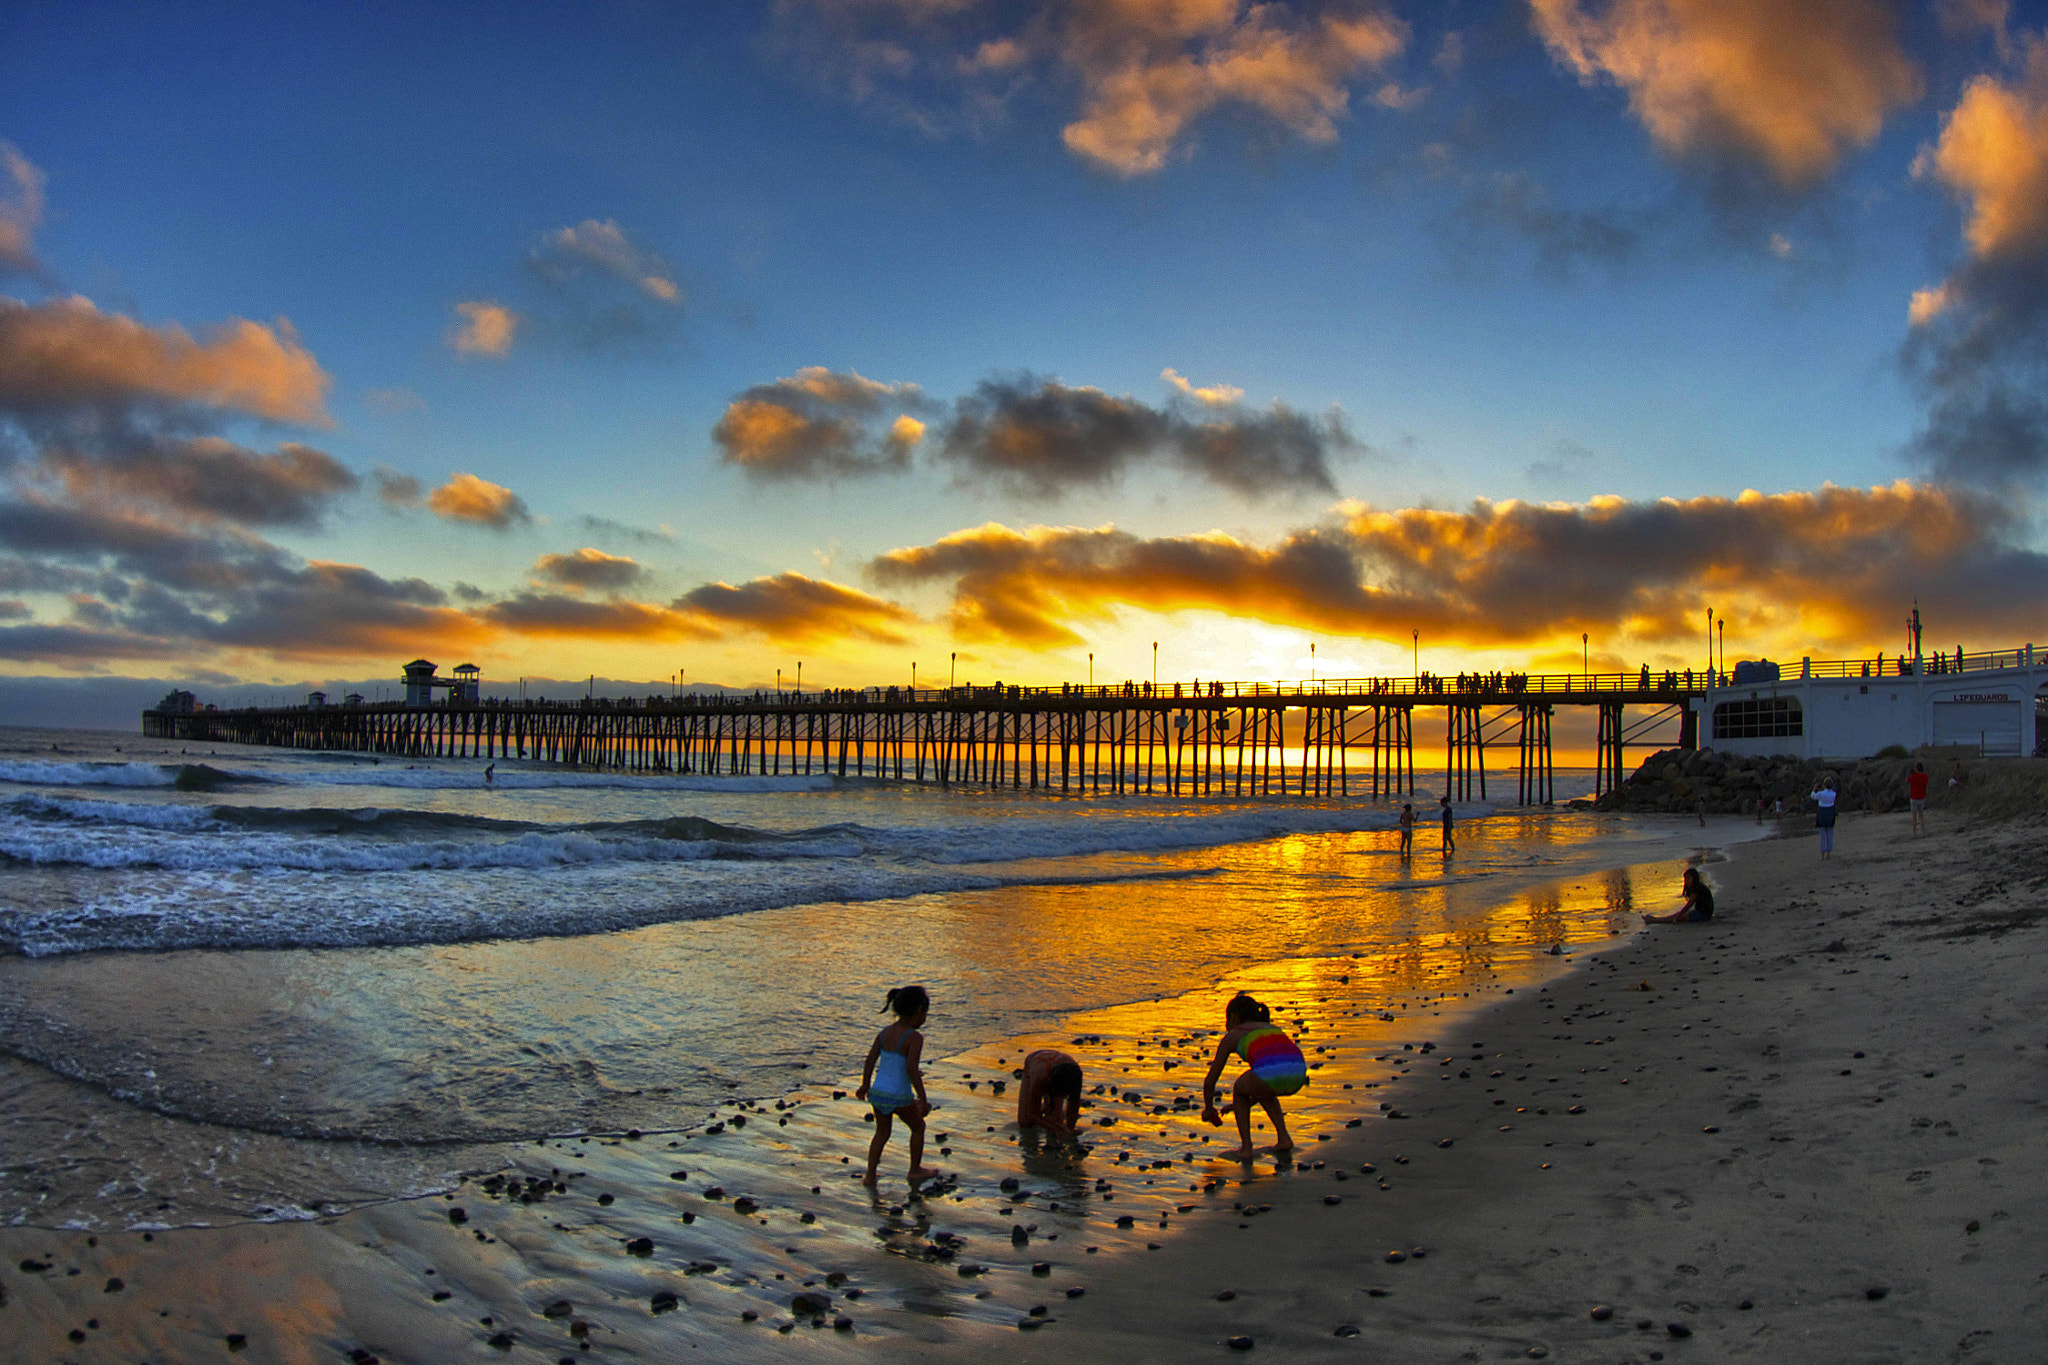 Photograph Kids Play in the Surf at Sunset - June 28, 2012 in Oceanside by Rich Cruse on 500px